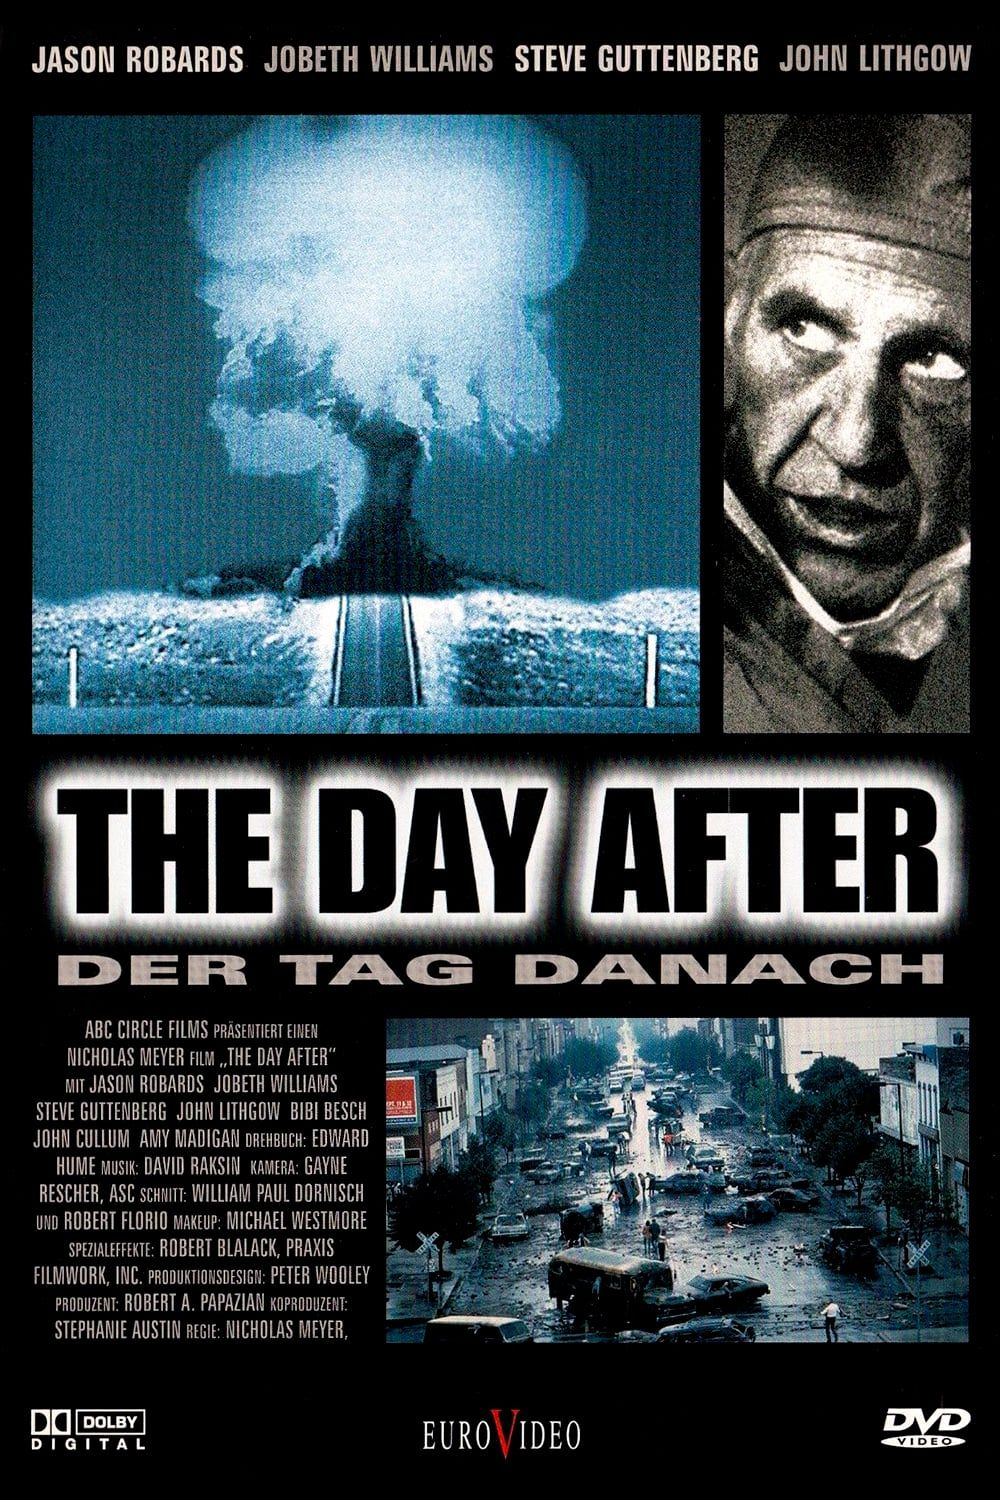 The Day After hel film TheDayAfter movie fullmovie